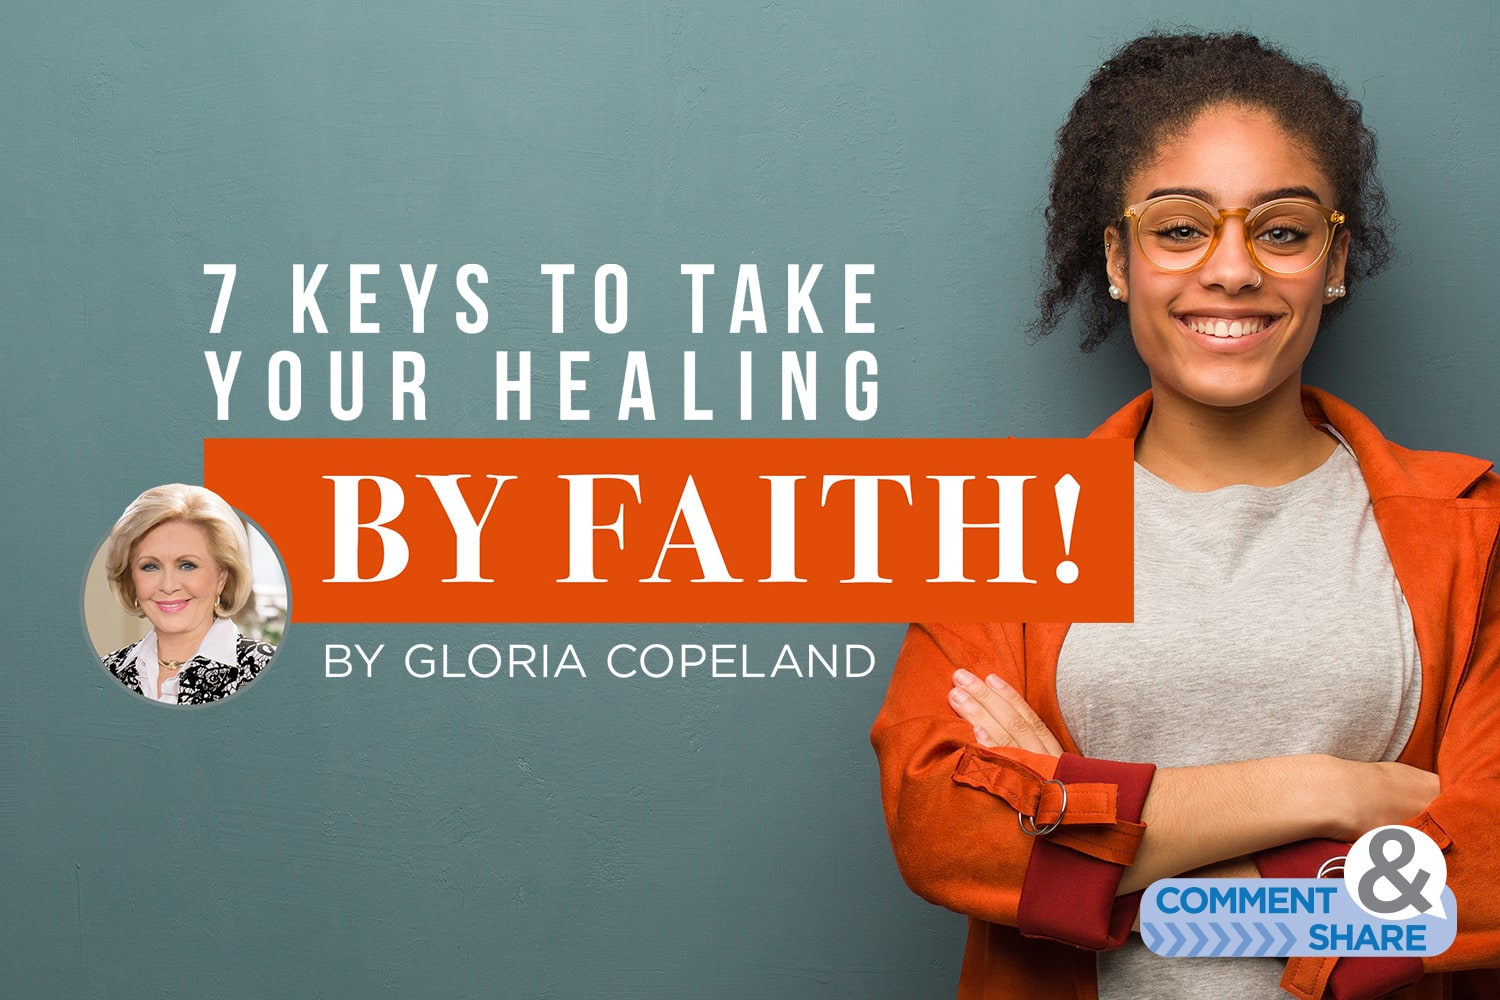 Keys to Take Your Healing by Faith